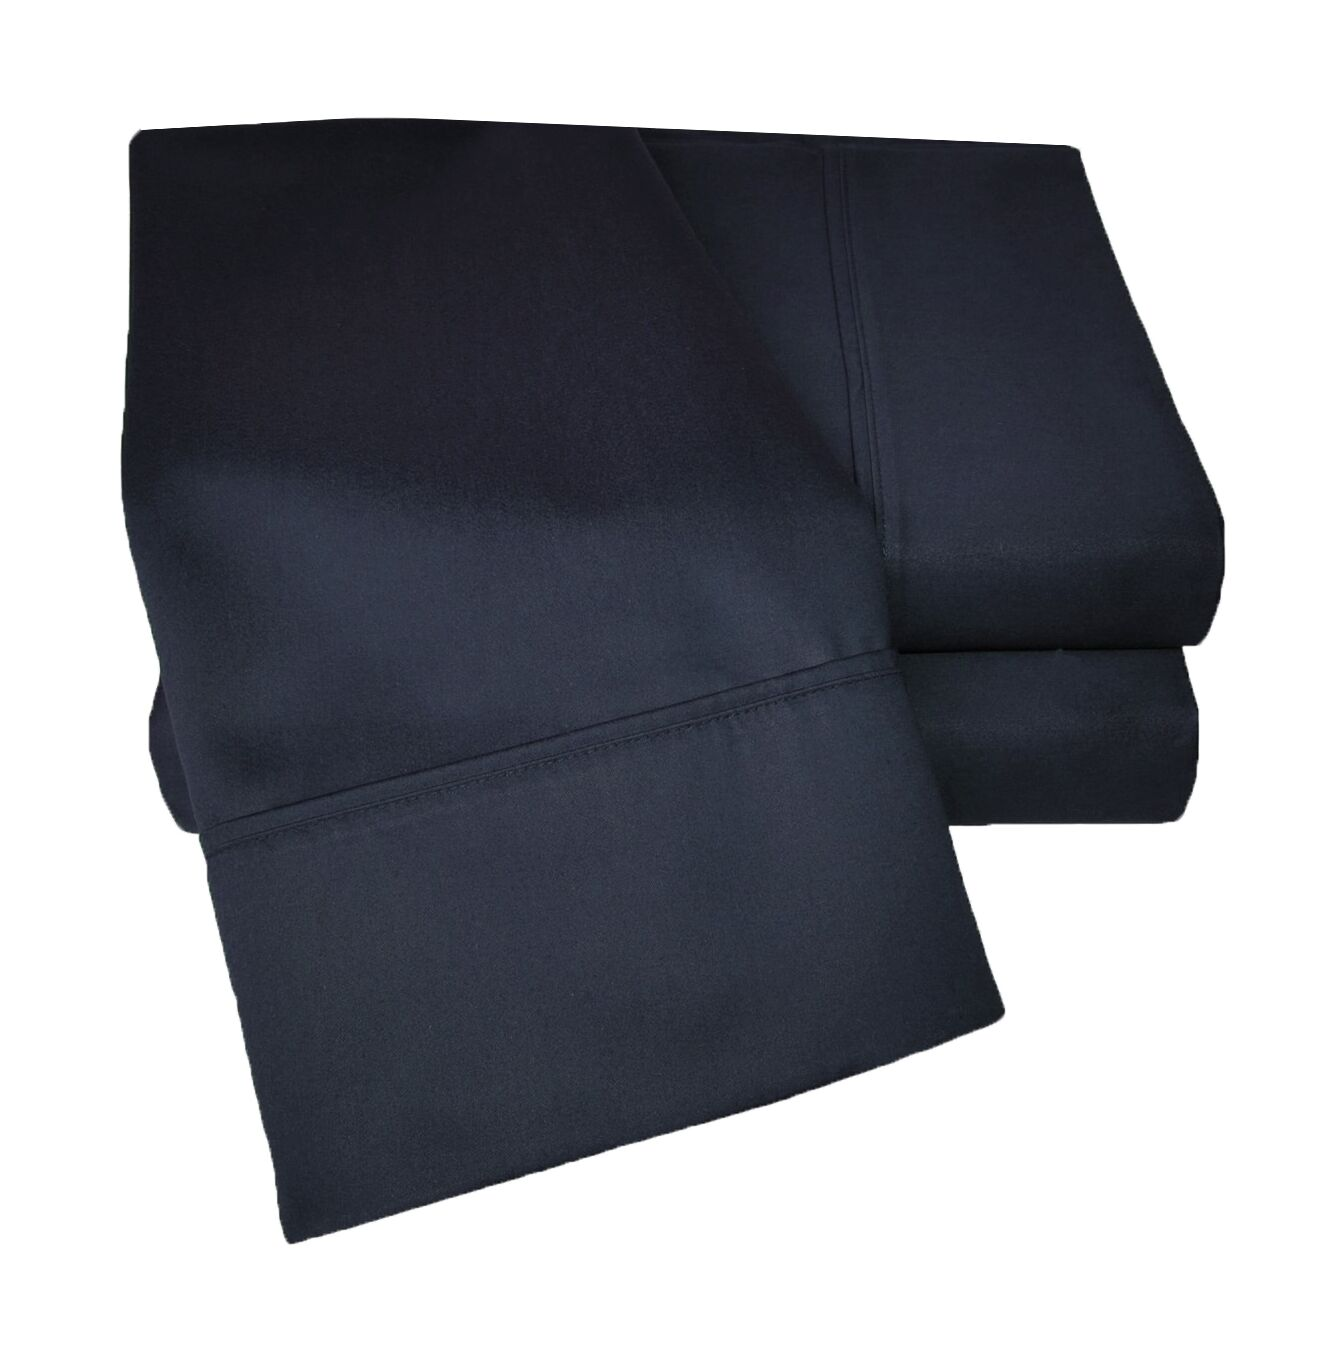 Uinta 1000 Thread Count Wrinkle Resistant Cotton Blend Sheet Set Size: Full, Color: Navy Blue